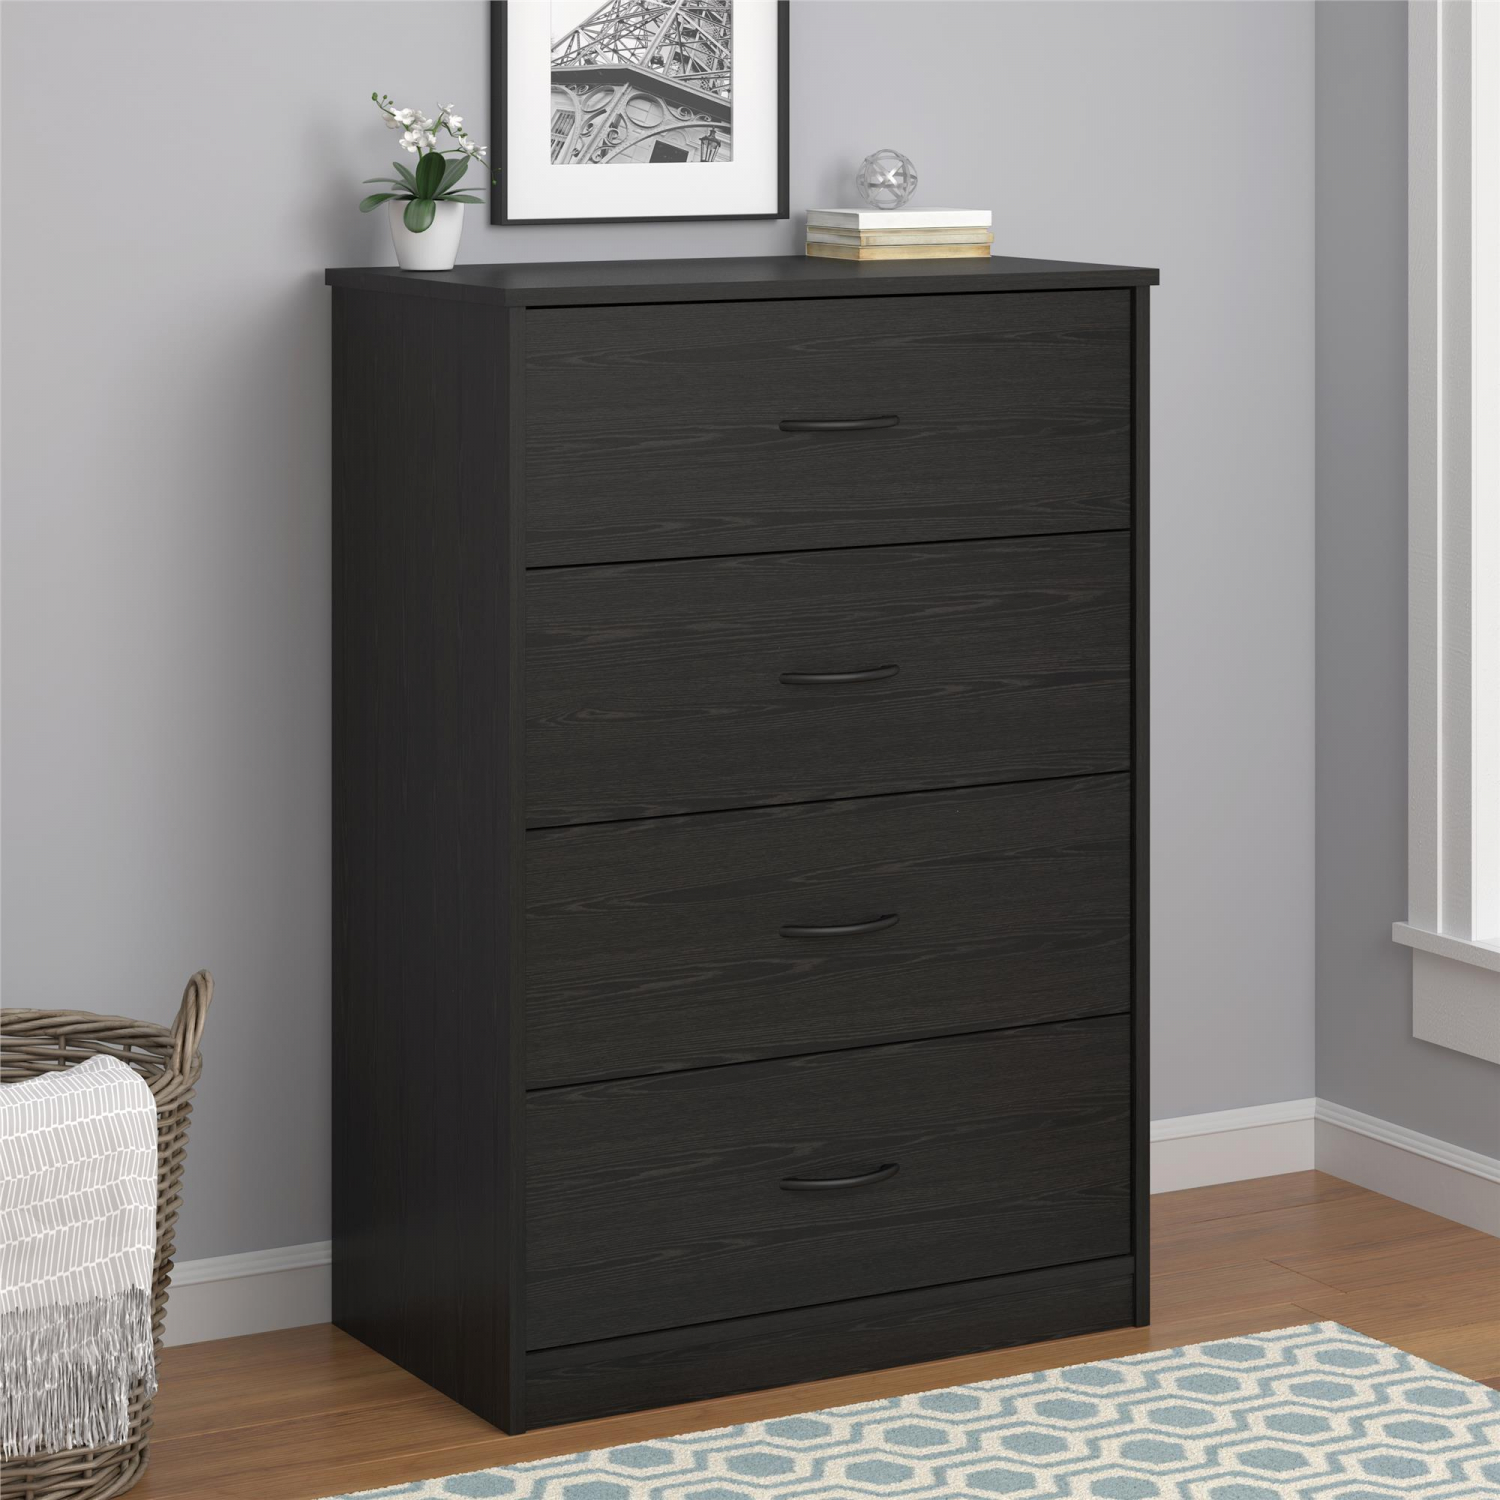 Details about 40 Tall 4-Drawer Modern Dresser Chest Bedroom Storage Wood  Furniture Black New